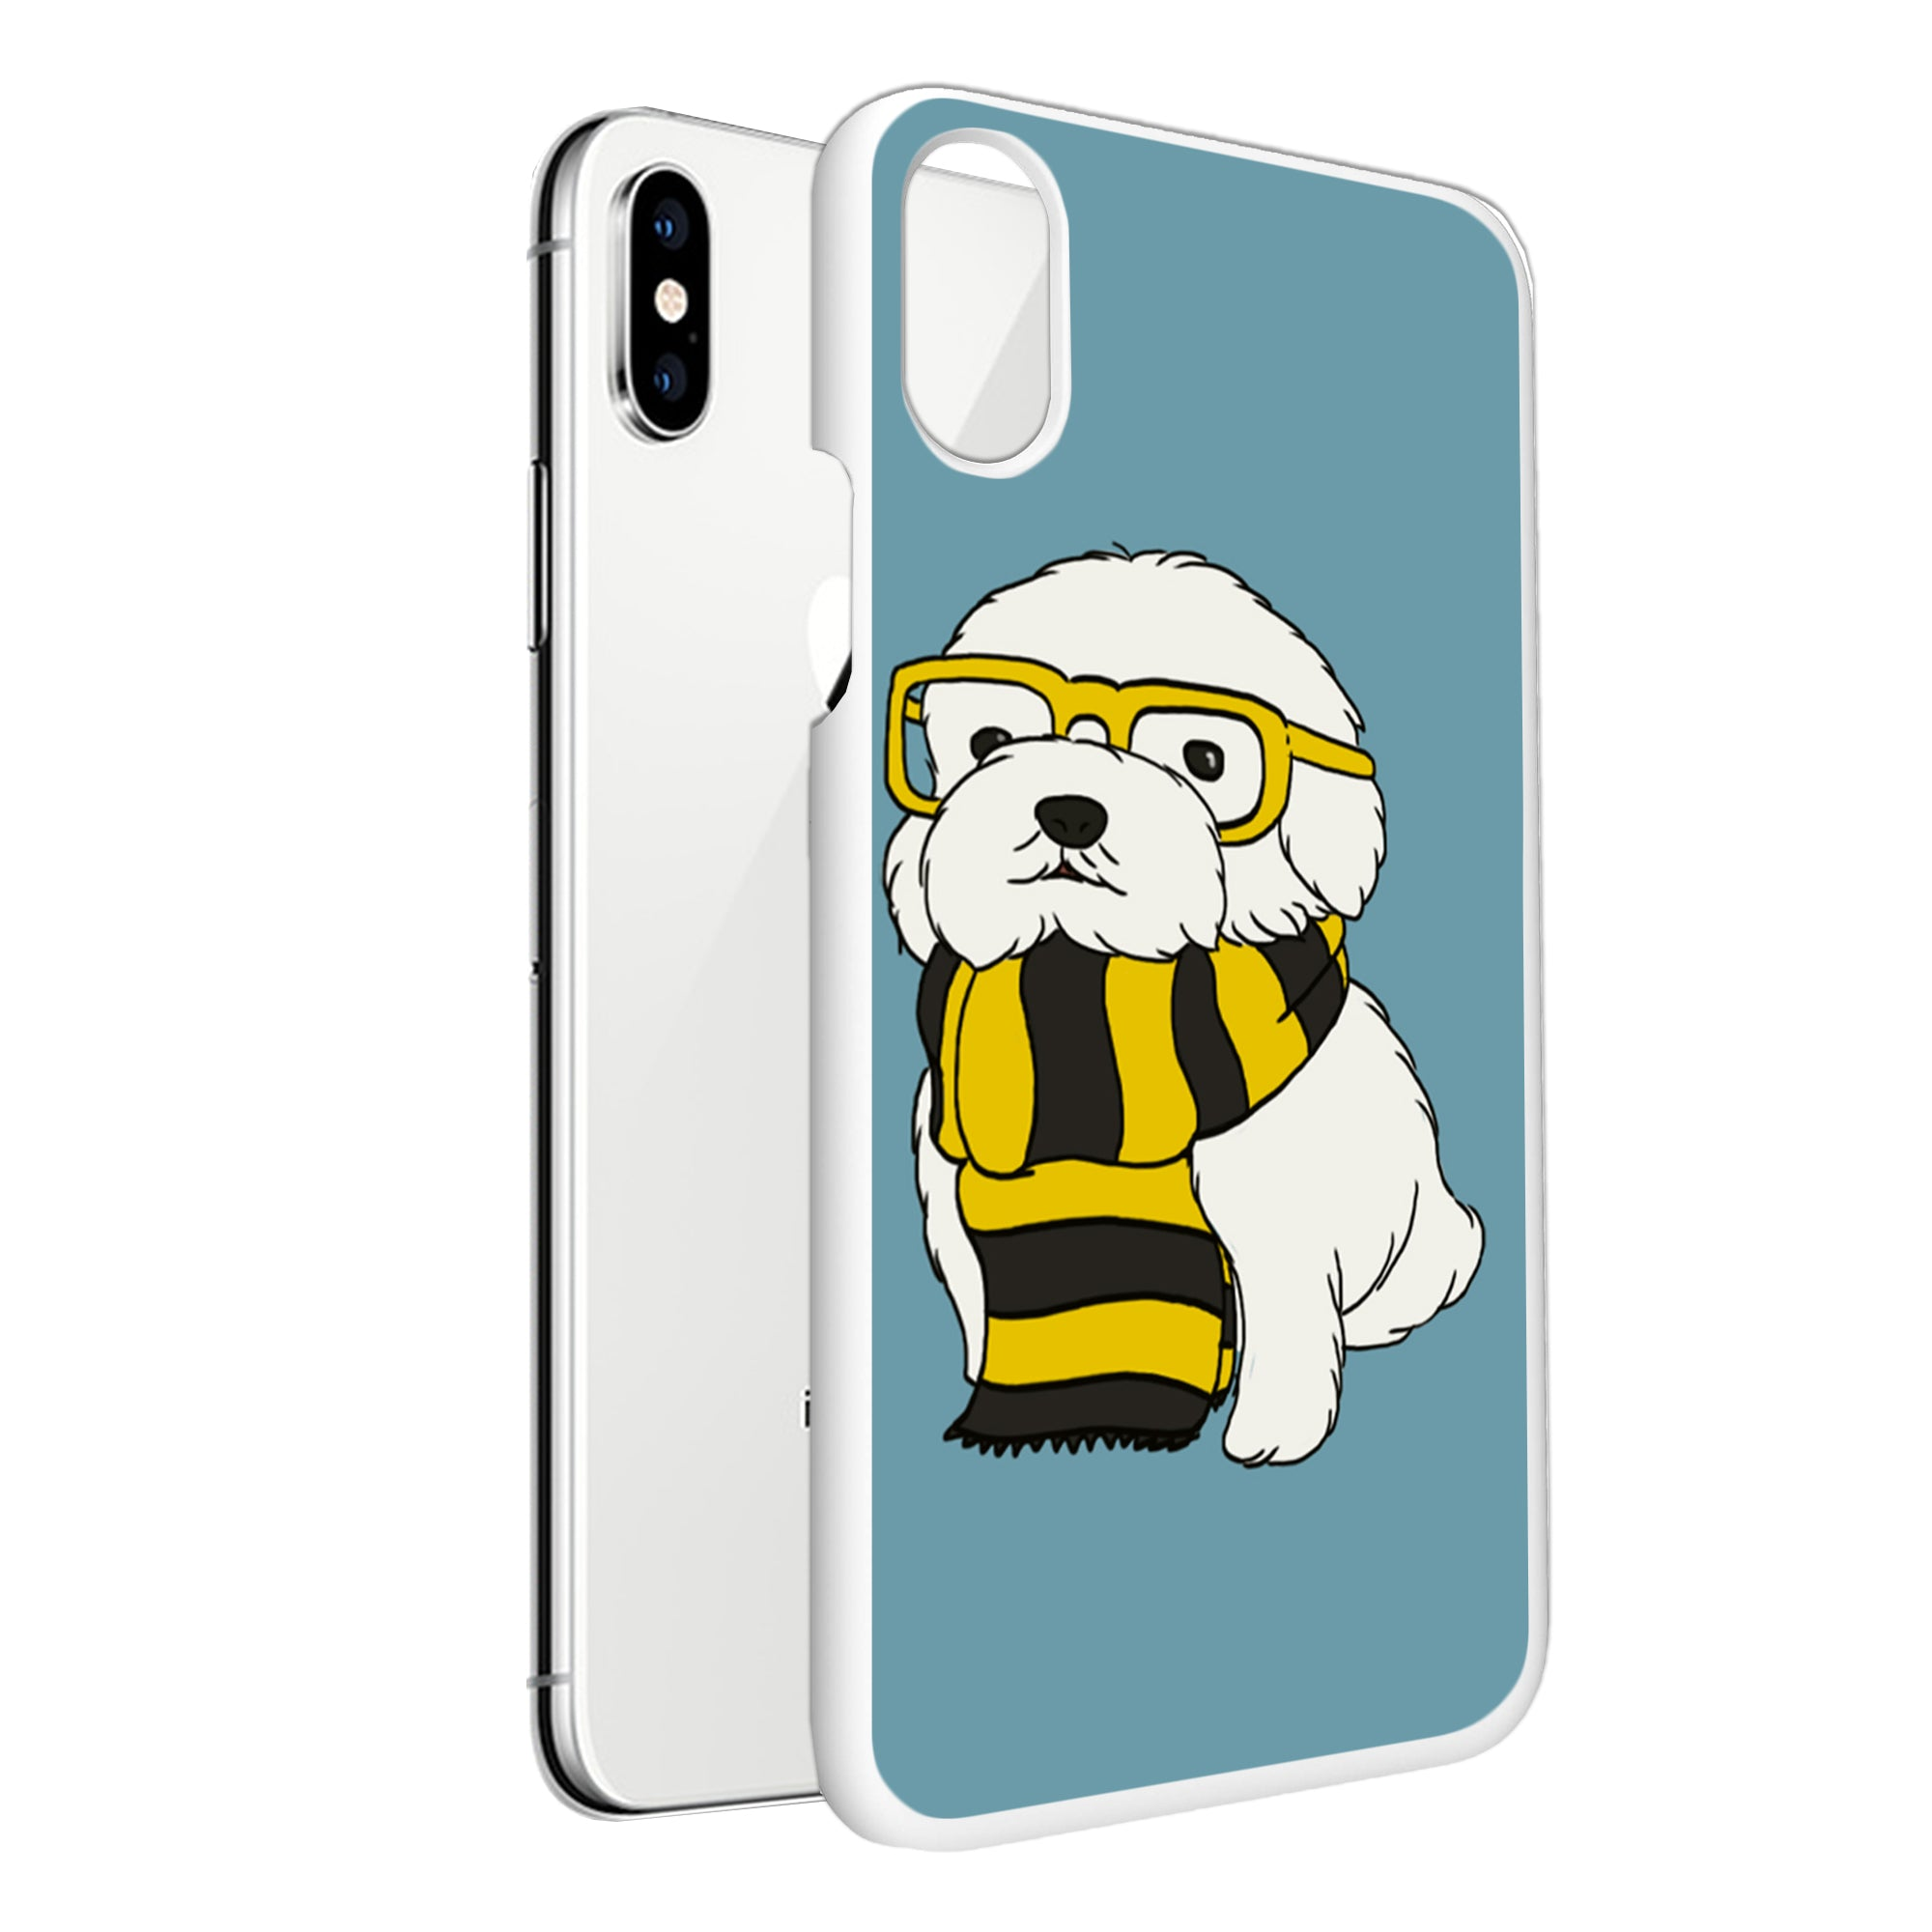 Apple iPhone Cases & Covers | iPhone XS Max, XS, X, 8/8 ...